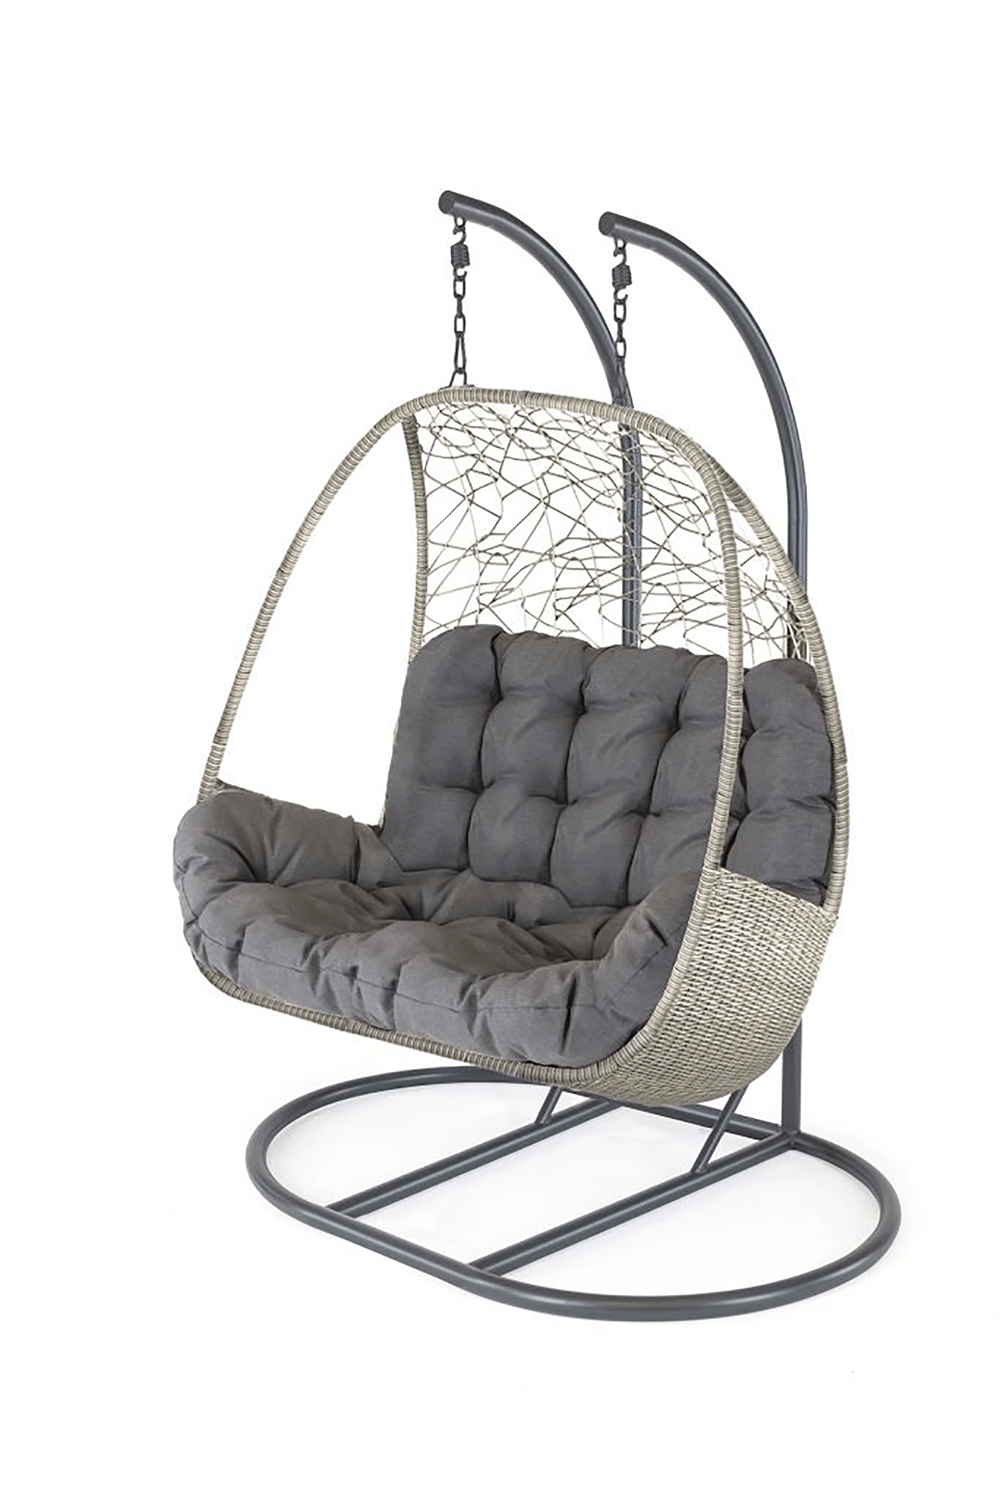 Double Hanging Egg Chair With Stand Uk, Outdoor Swing Chair With Stand Uk